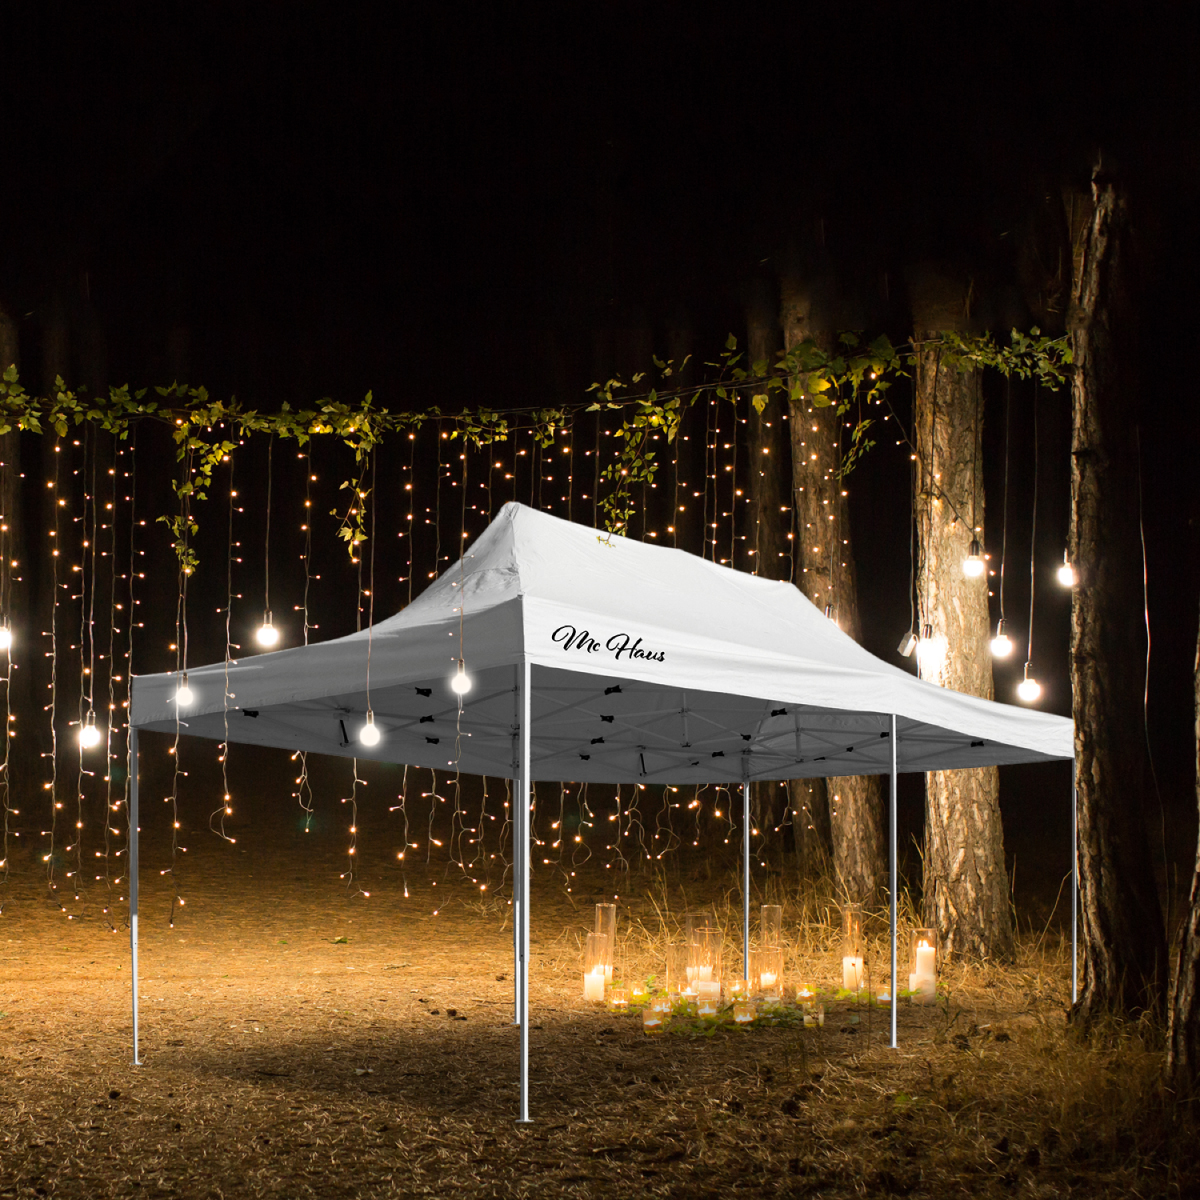 Carpas plegables de jard n baratas ideales para eventos for Carpas jardin baratas